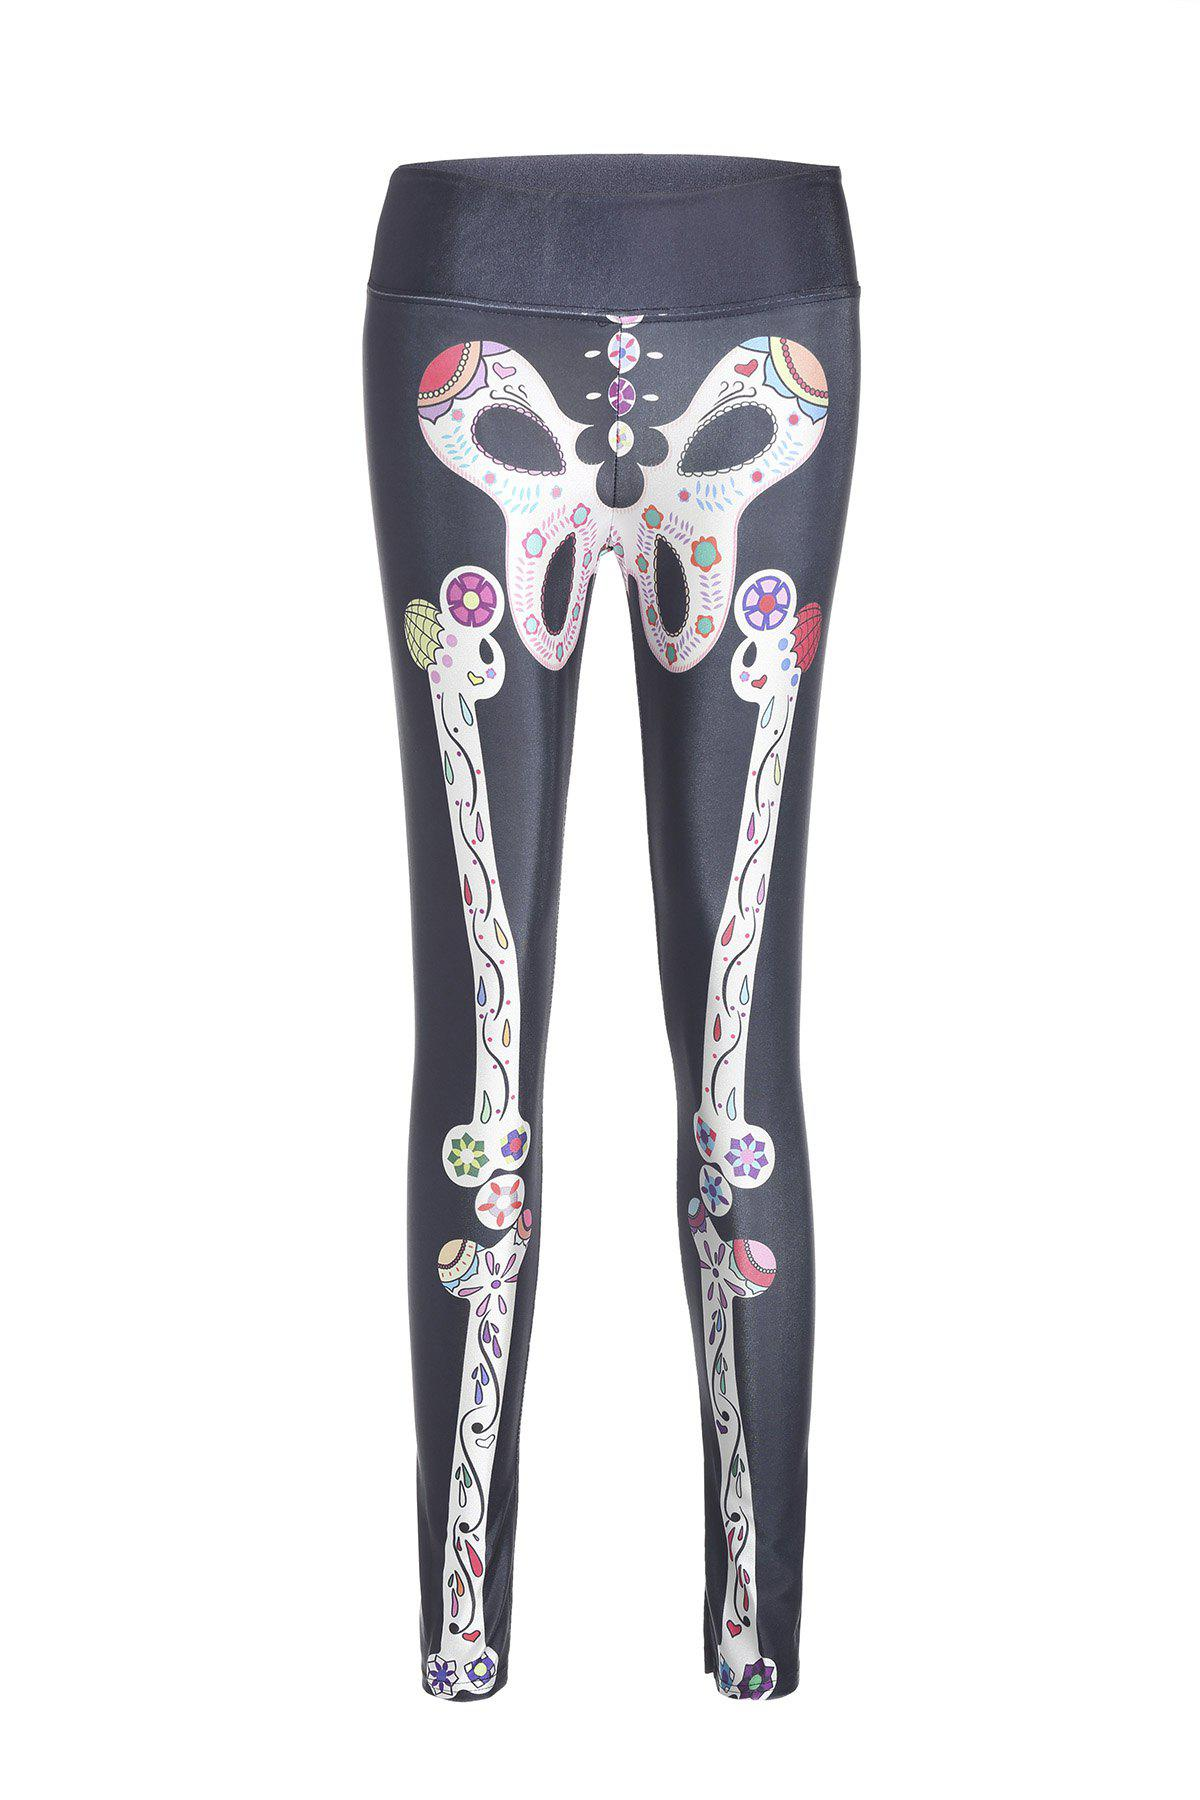 Active Skeleton Print High Stretchy Women's Yoga Pants - COLORMIX